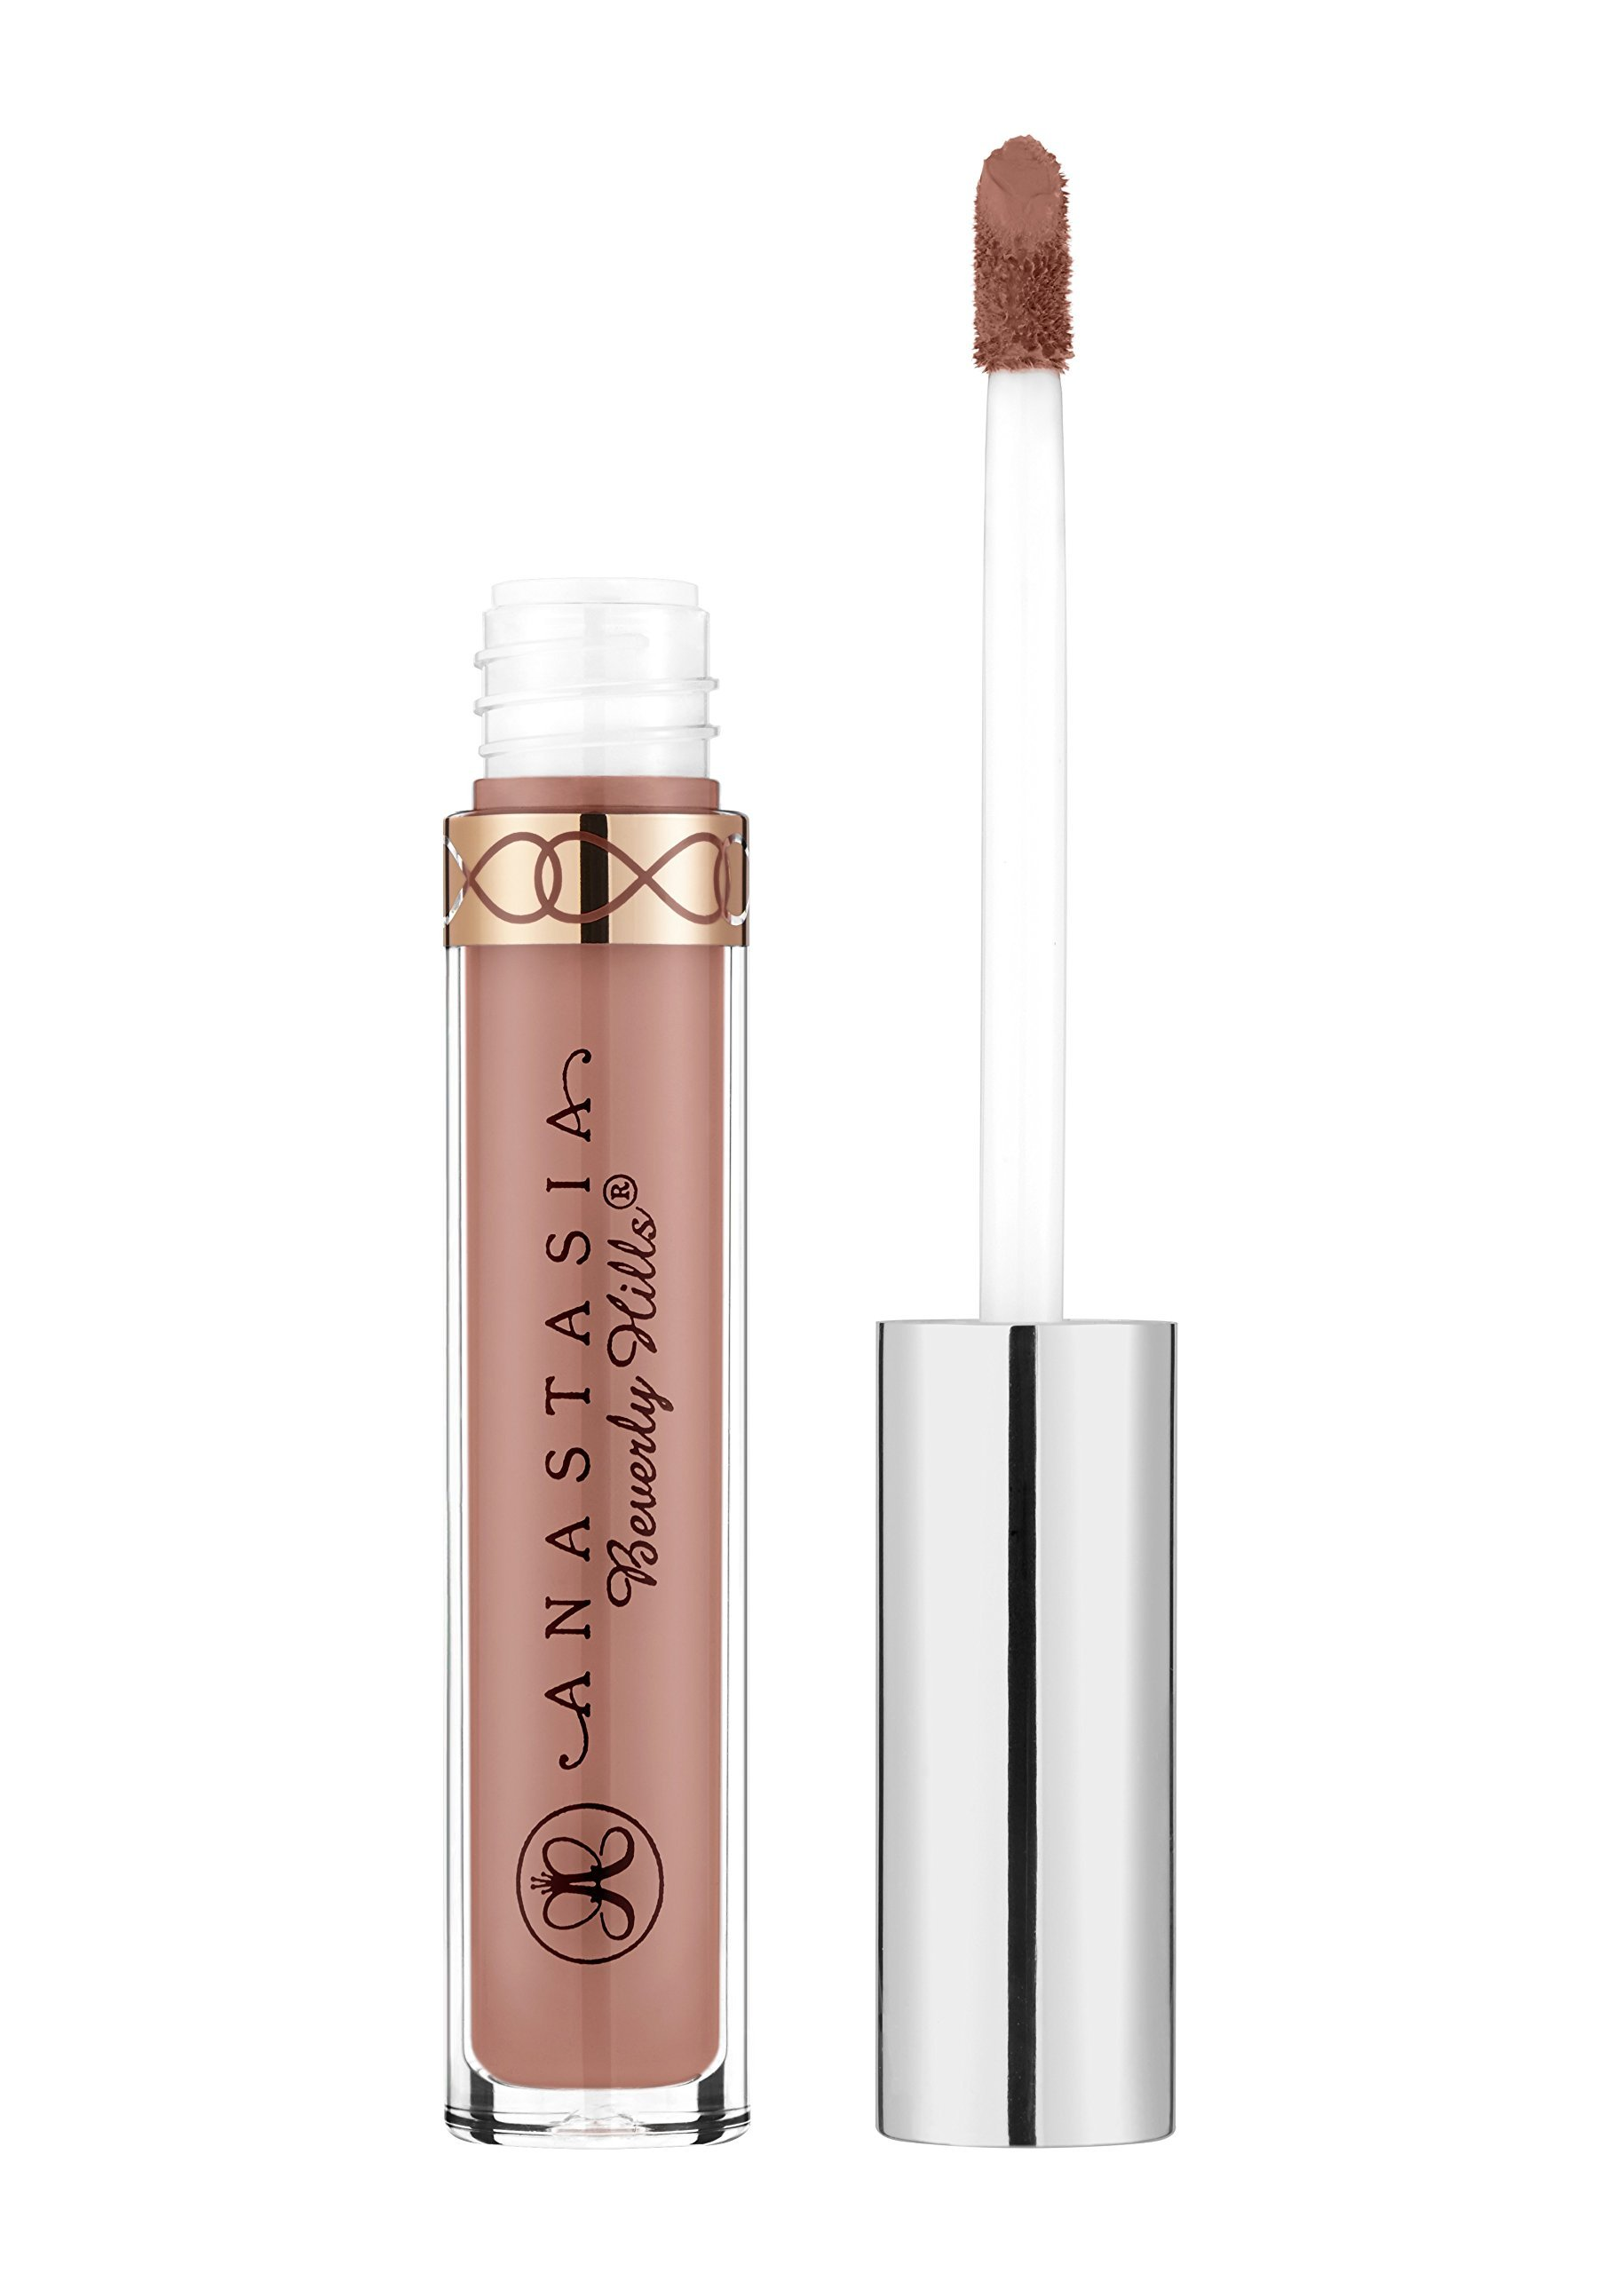 Anastasia Beverly Hills - Anastasia Beverly Hills - Liquid Lipstick - Pure Hollywood - Pale Mauve Nude